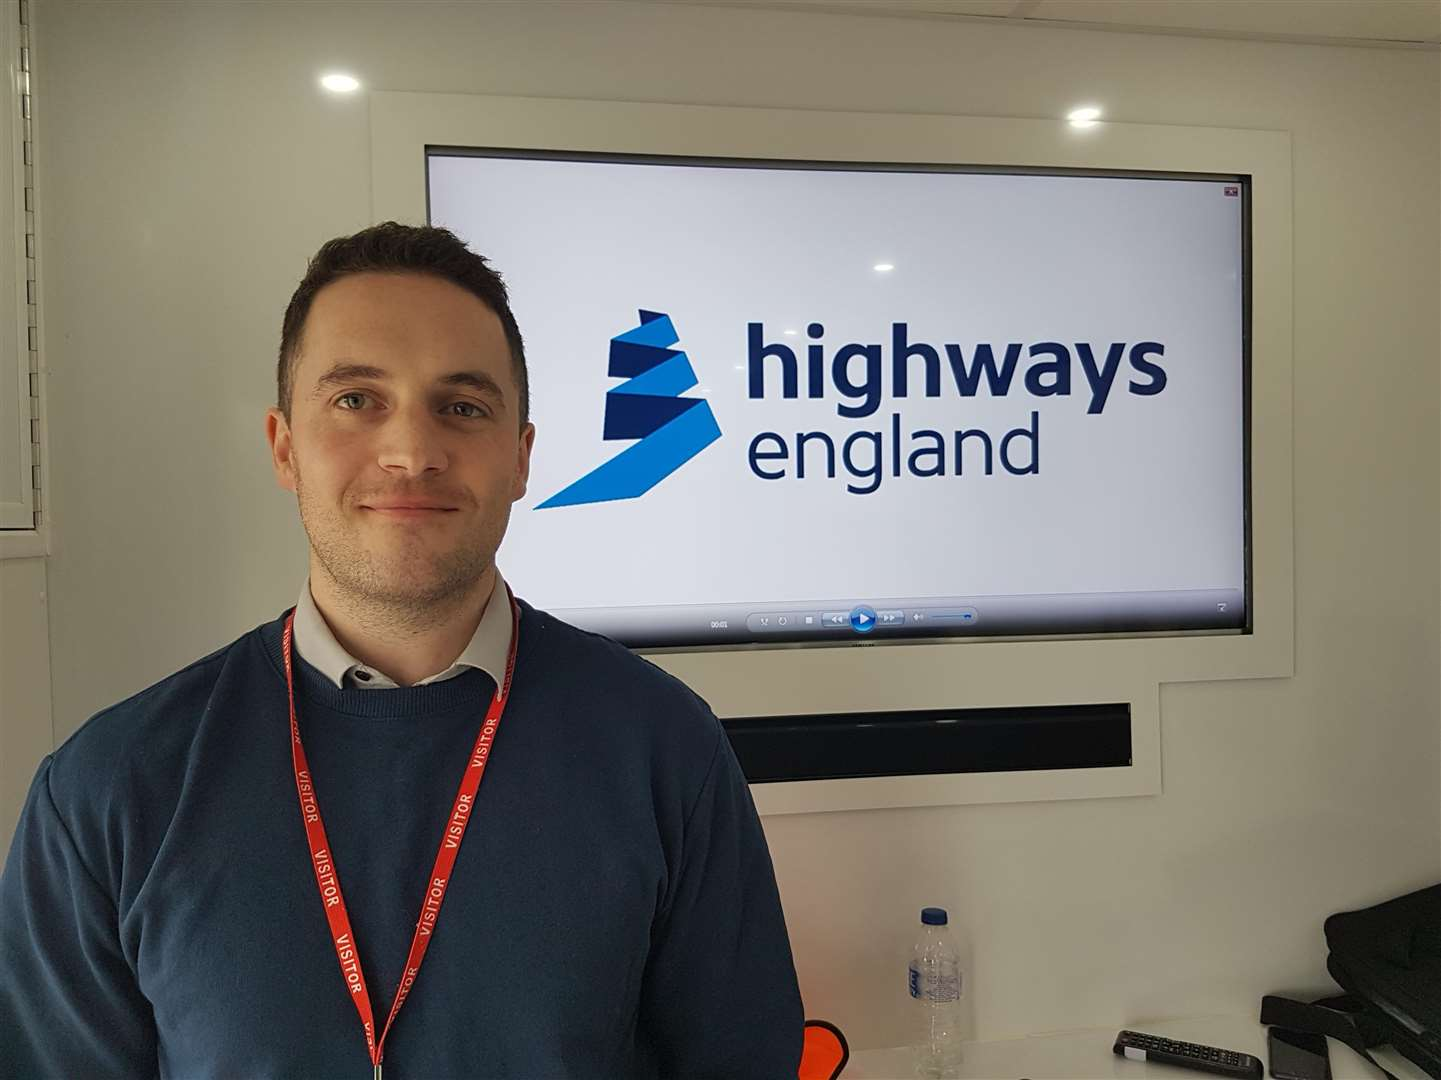 Tom Selby, Highways England's project manager for the M20 Junction 10a works